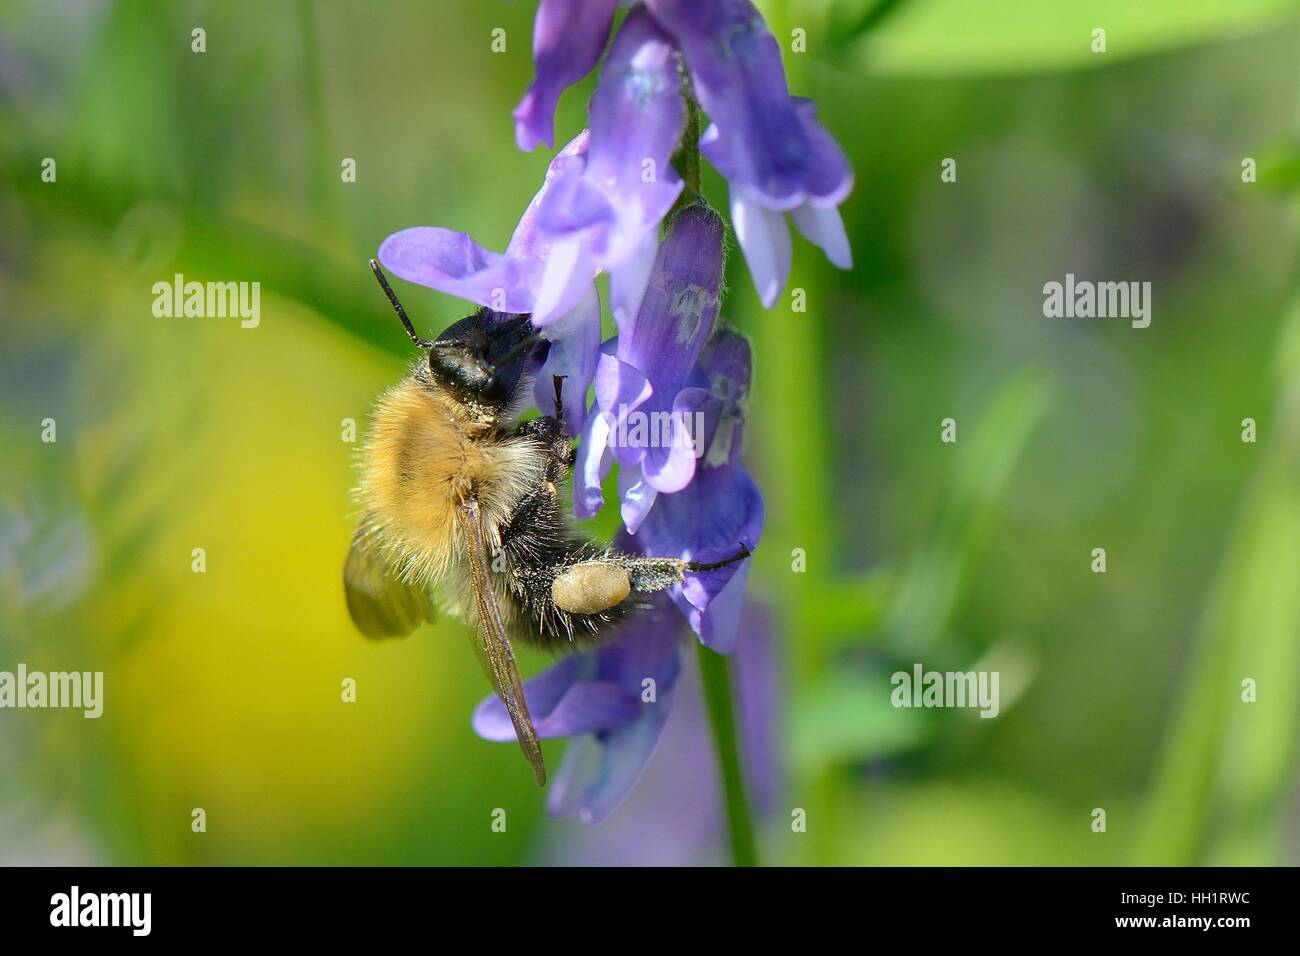 Common carder bumblebee (Bombus pascuorum) nectaring on Tufted vetch (Vicia cracca) flowers, Bristol, UK - Stock Image